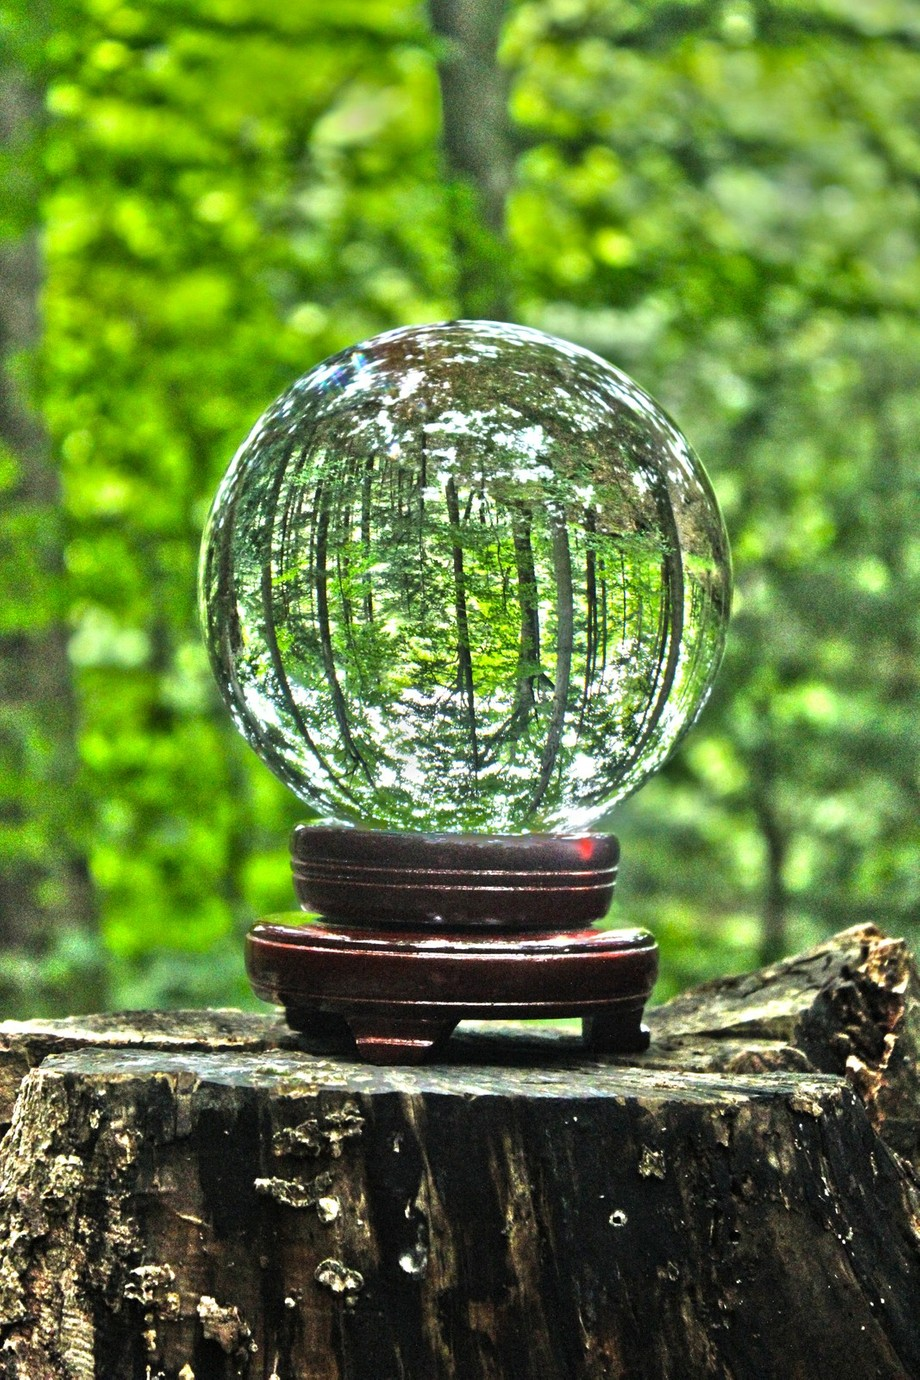 this was a cool shot of the crystal ball within the carpenter falls forest.